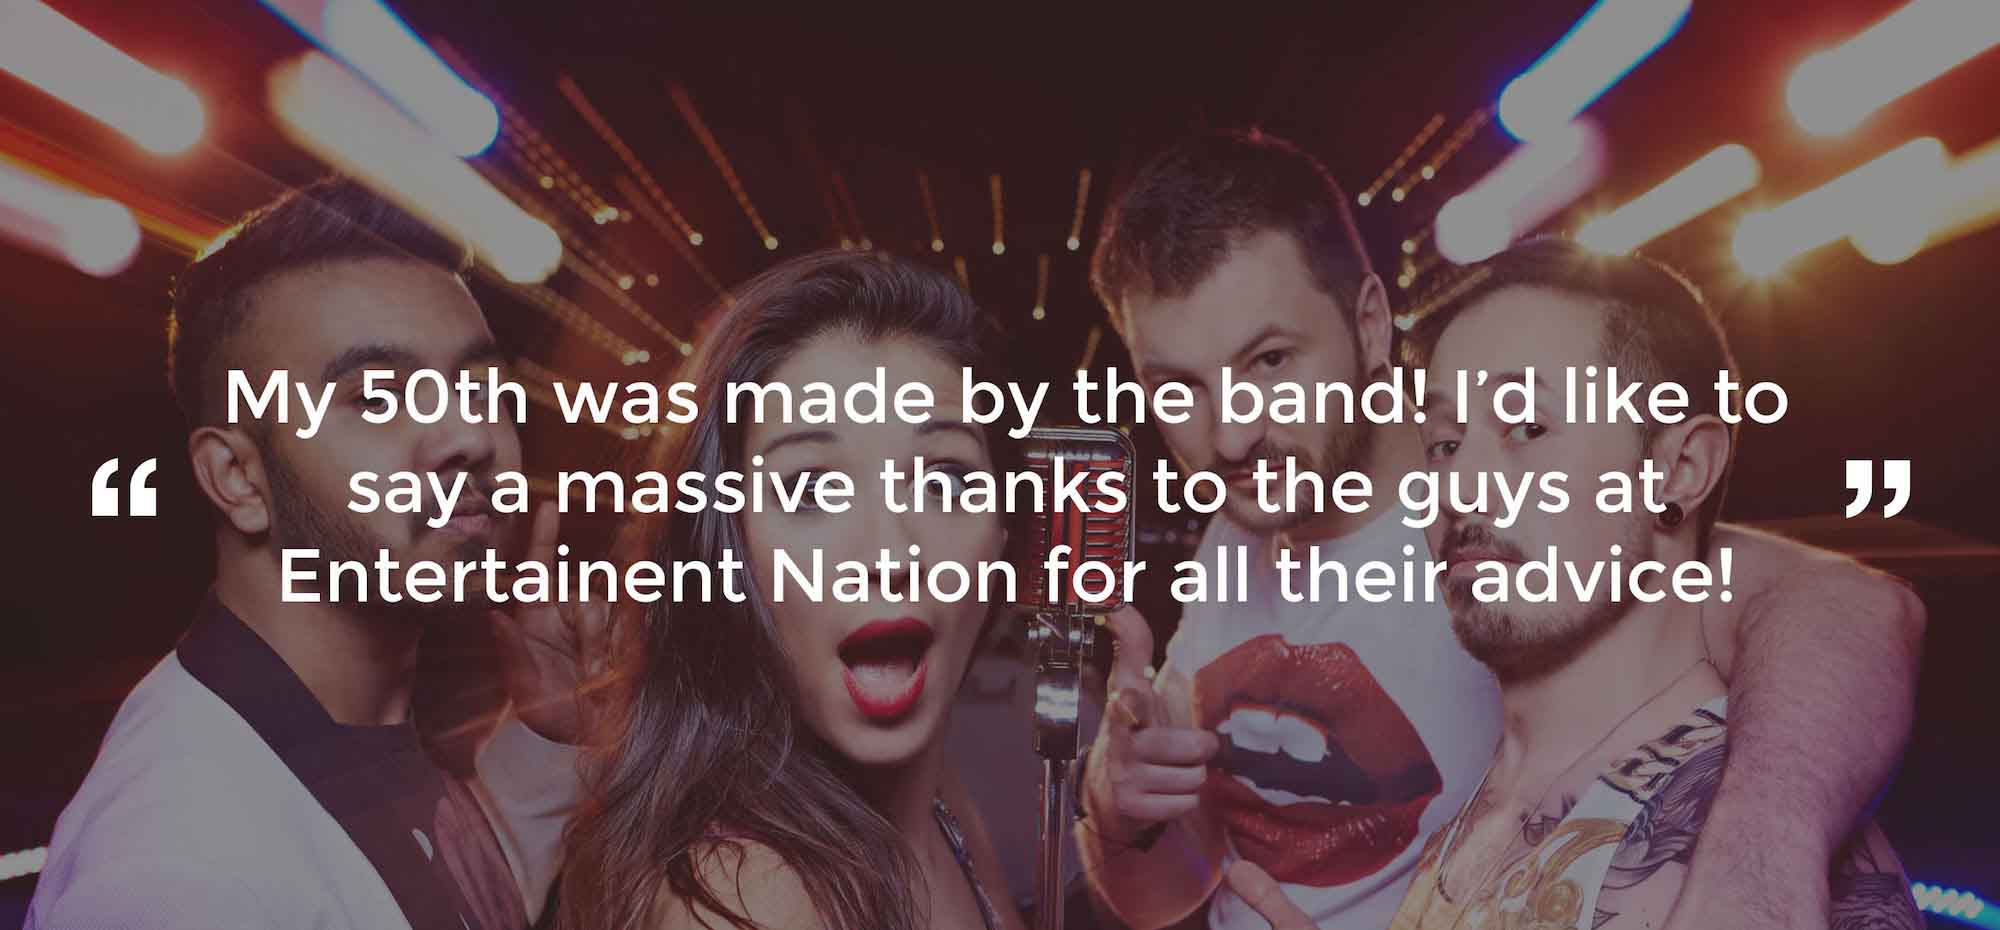 Client Review of a Party Band Isle Of Wight